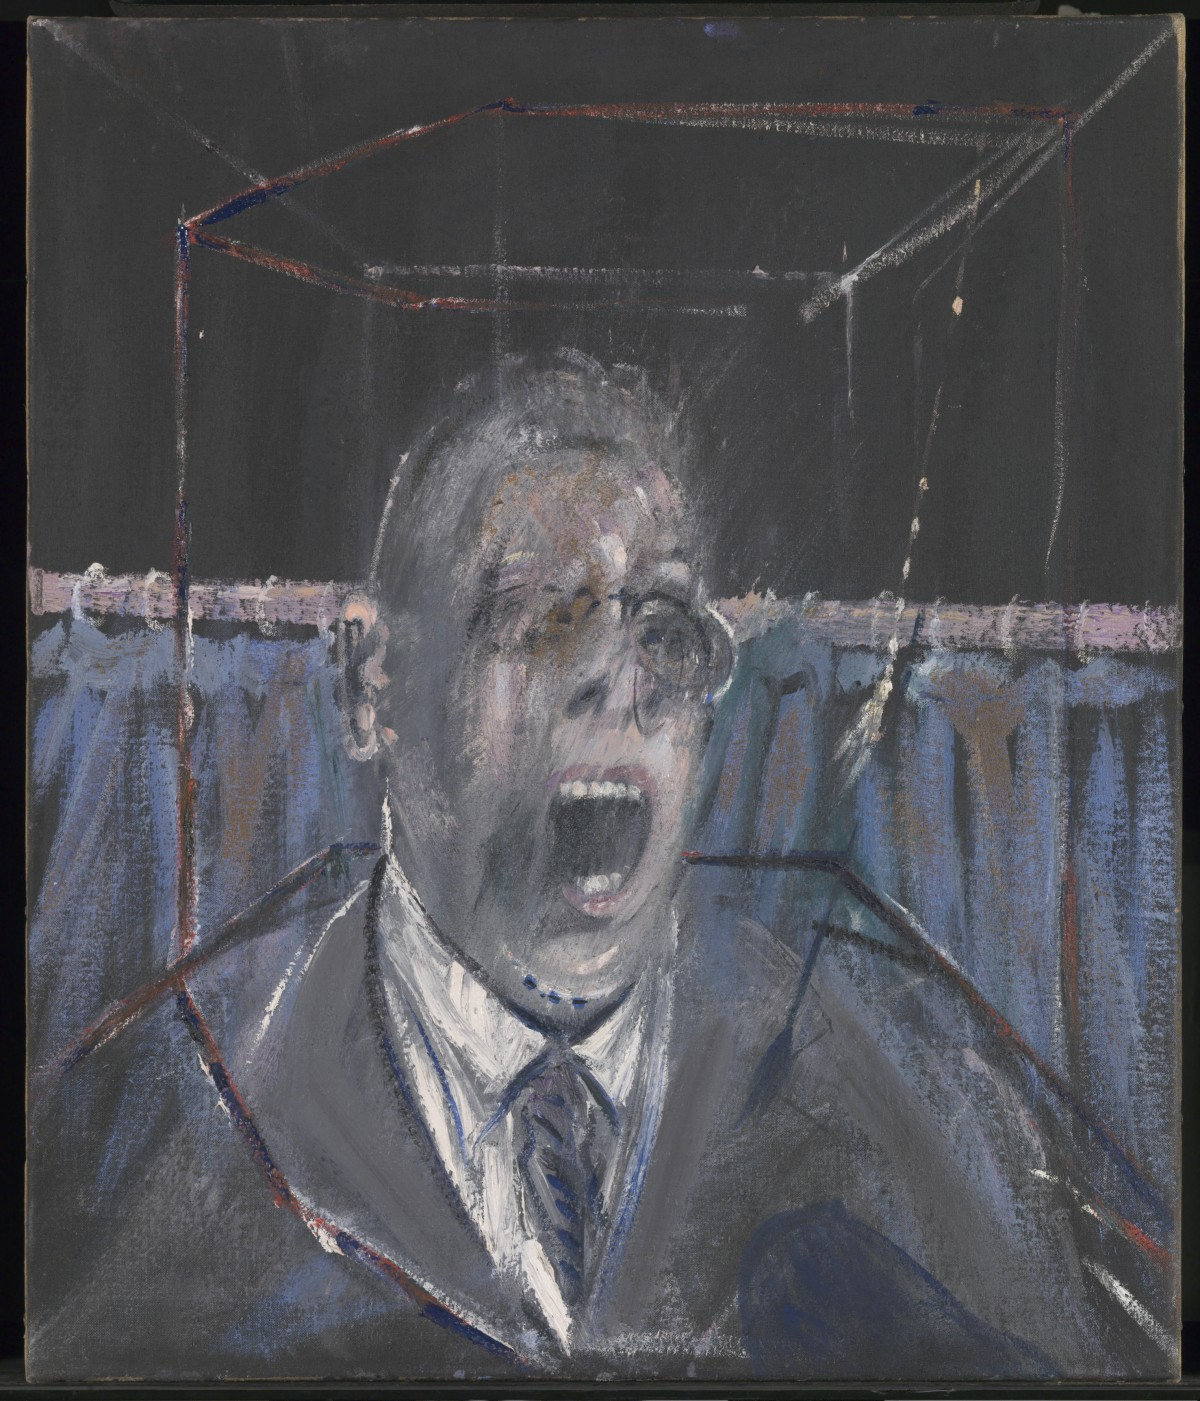 Francis Bacon's Study for a Portrai, 1952